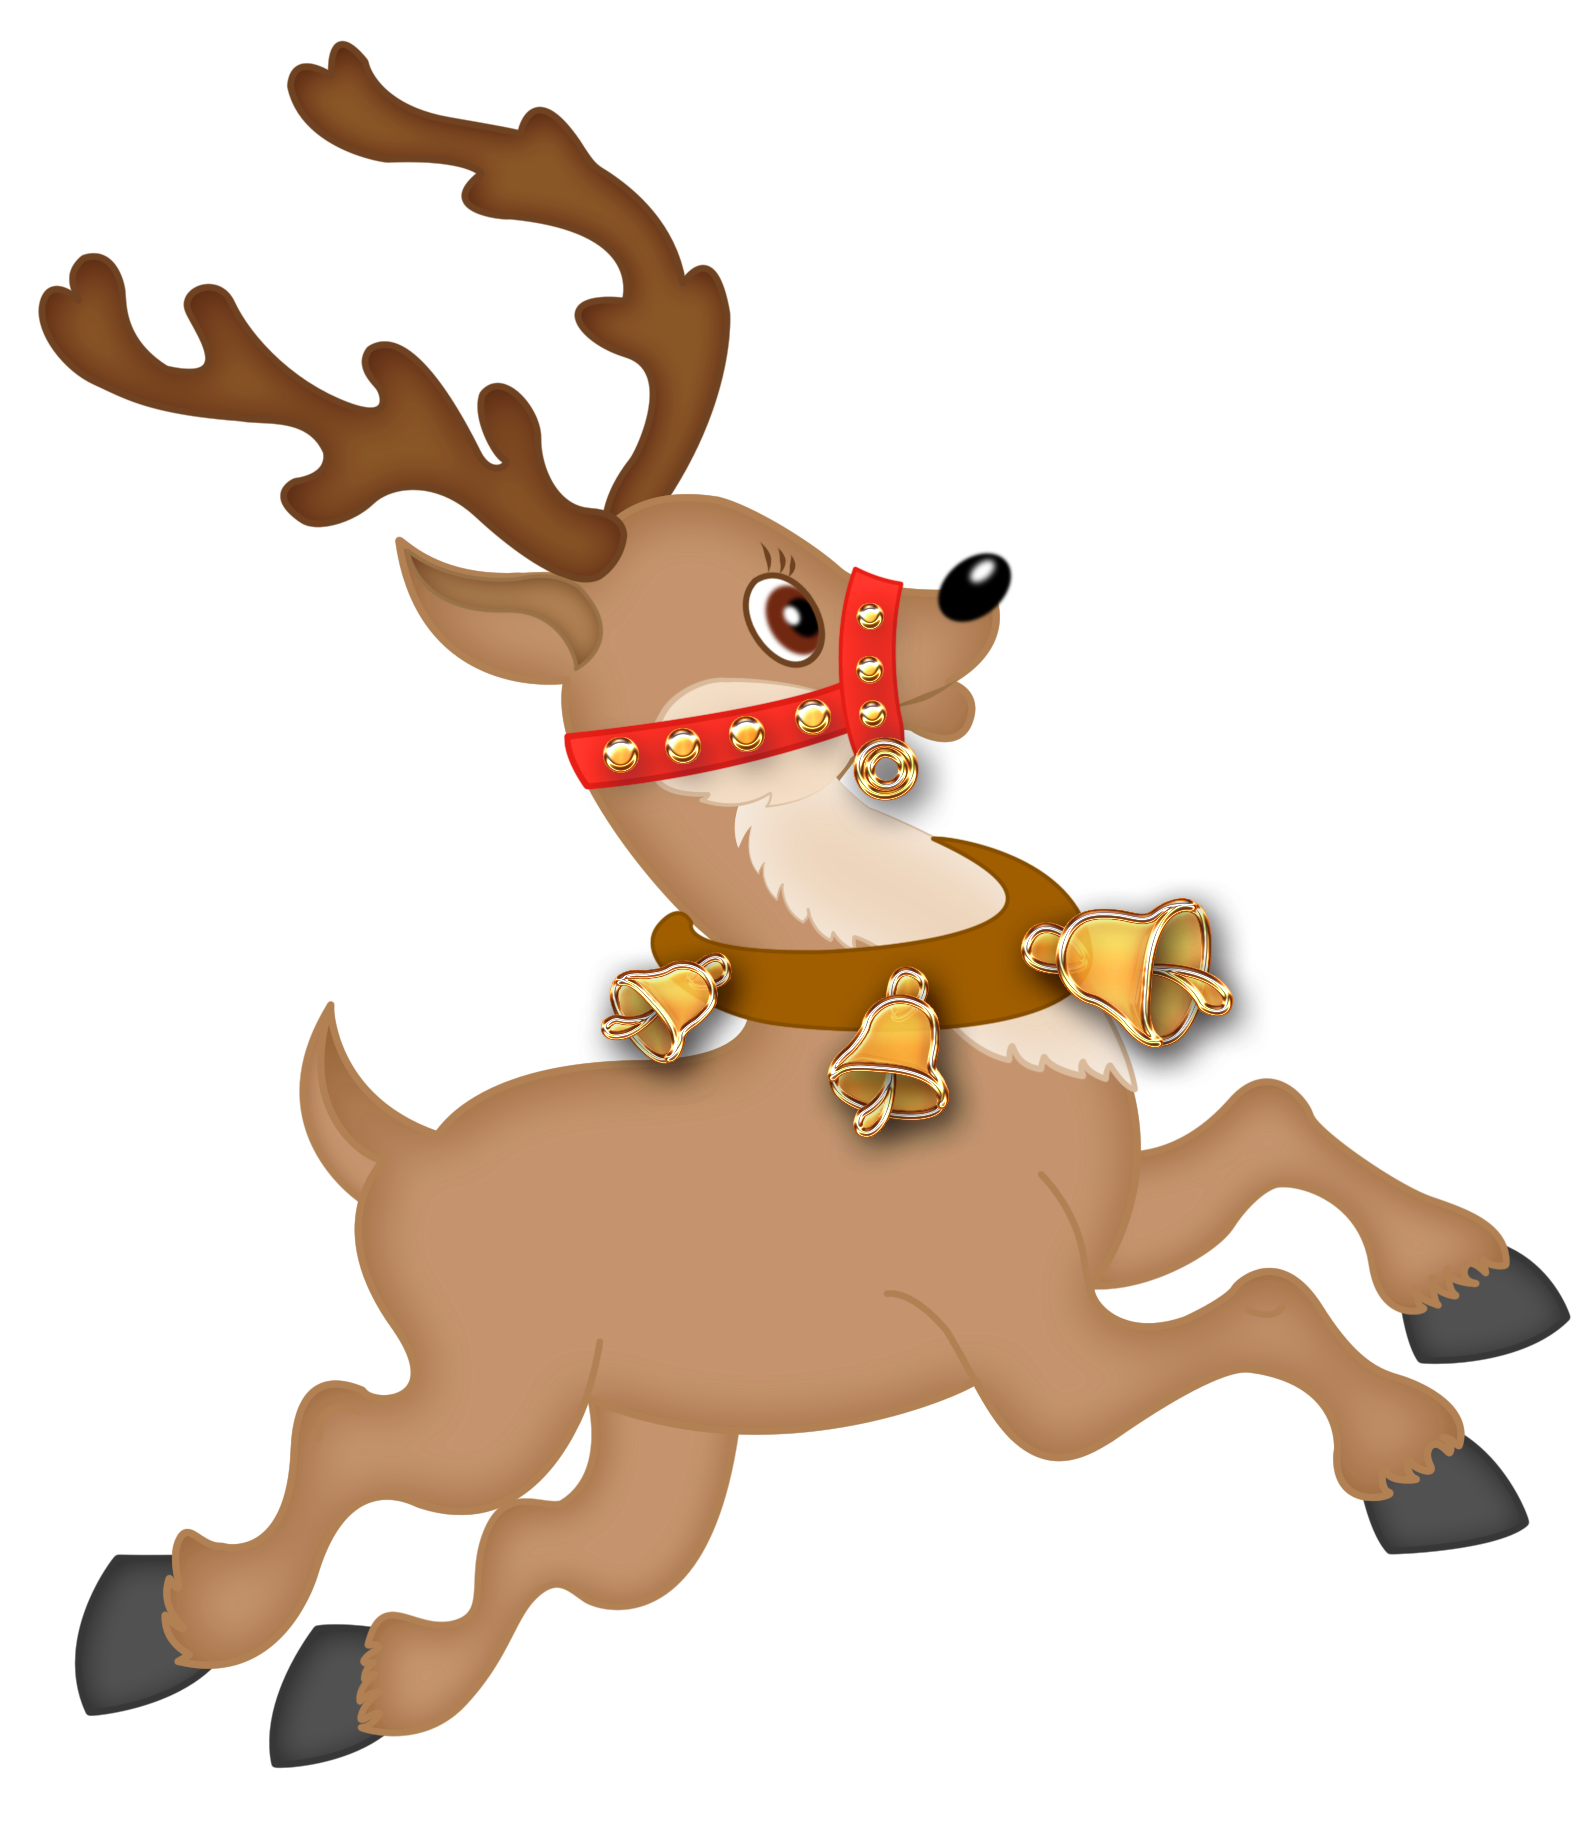 Reindeer sayings clipart free vector black and white Free Christmas Reindeer Images, Download Free Clip Art, Free Clip ... vector black and white